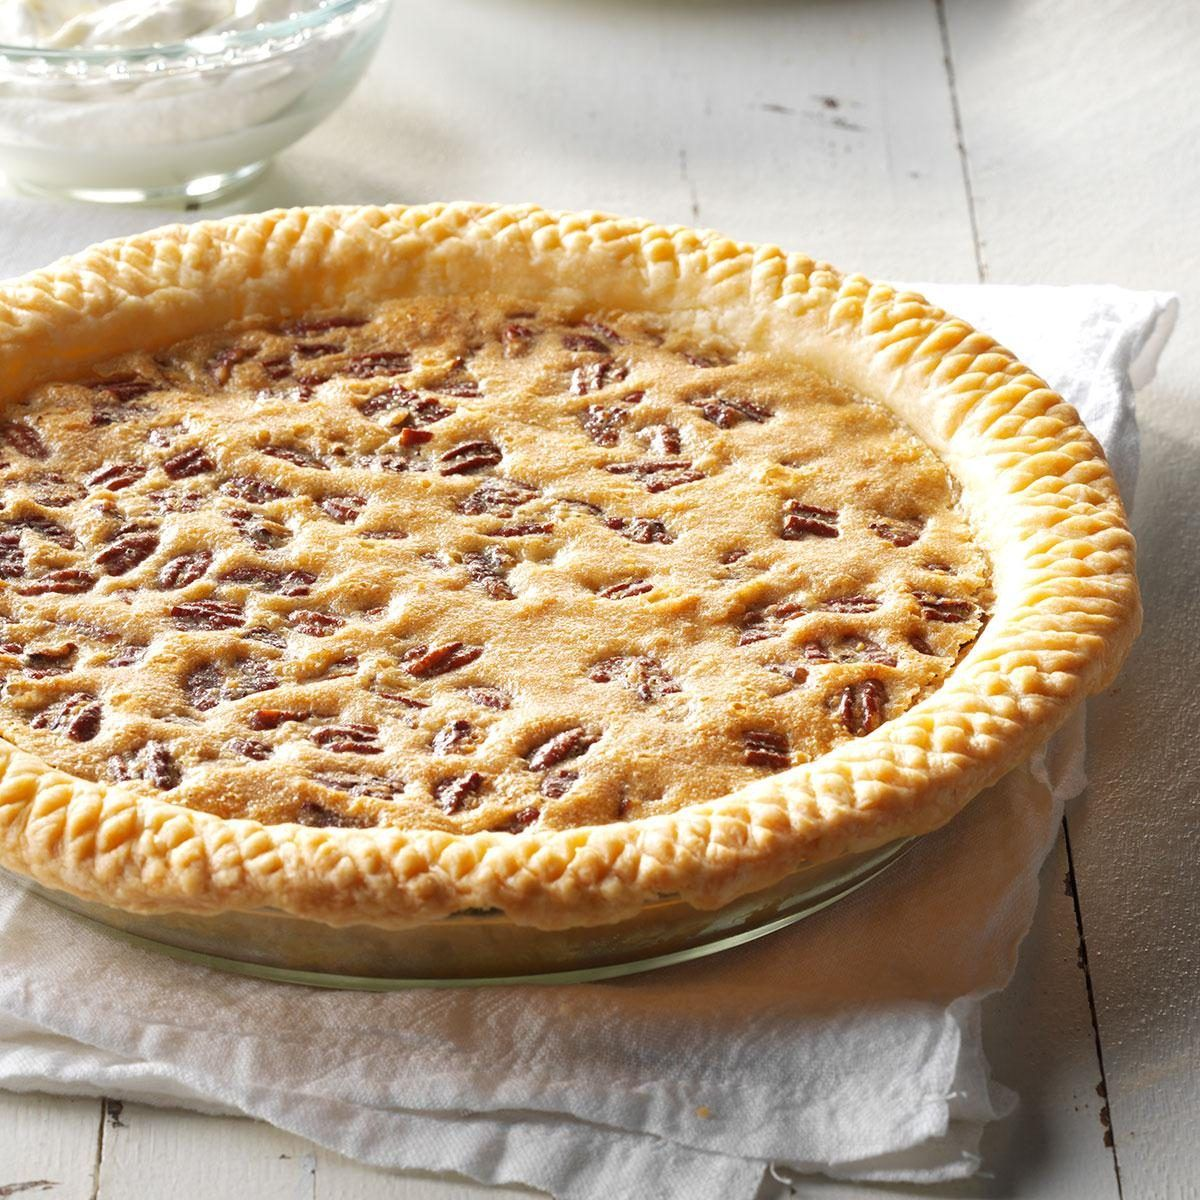 Raisin Pecan Pie Recipe In 2020 Recipes Desserts Decorative Pie Crust